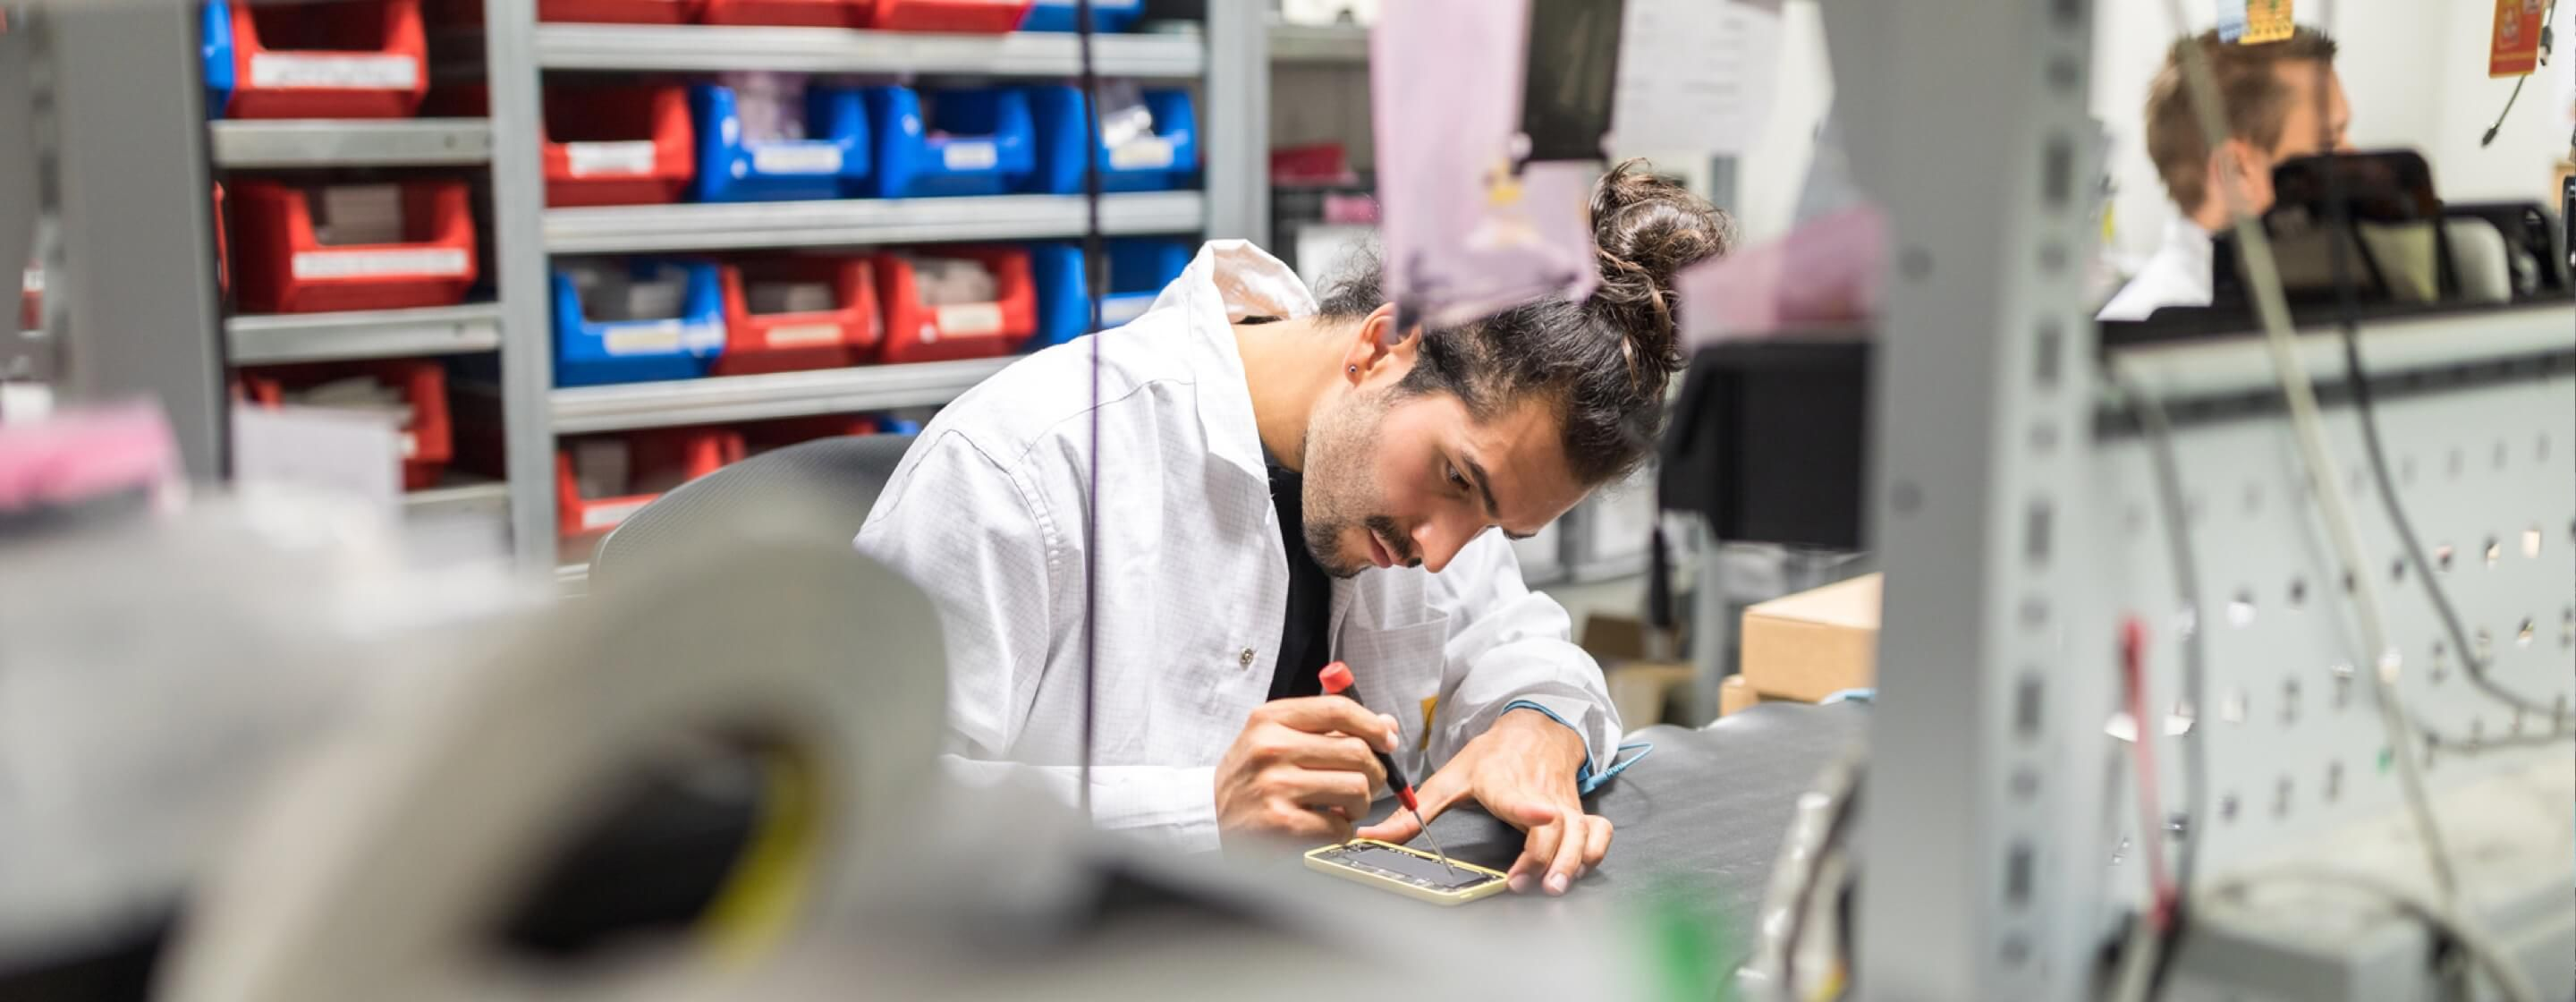 Man in white lab coat concentrating on soldering a mobile phone in the microelectronics industry